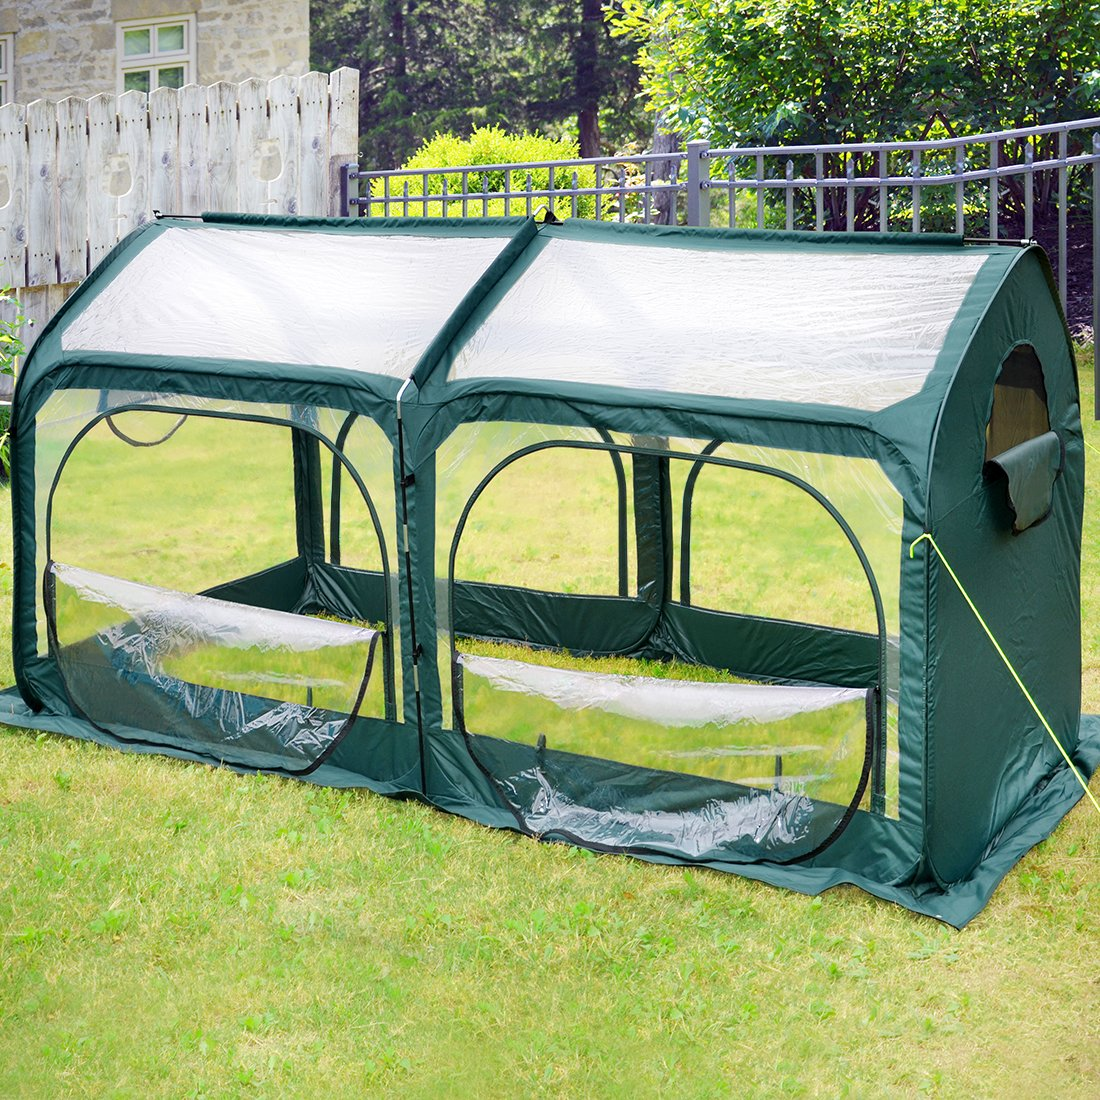 Quictent Pop up Greenhouse Passed SGS Test Eco-Friendly Fiberglass Poles Overlong Cover 6 Stakes 98 x 49 x 53 Inches Mini Portable Green House W/ 4 Zipper Door (Green) by Quictent (Image #1)